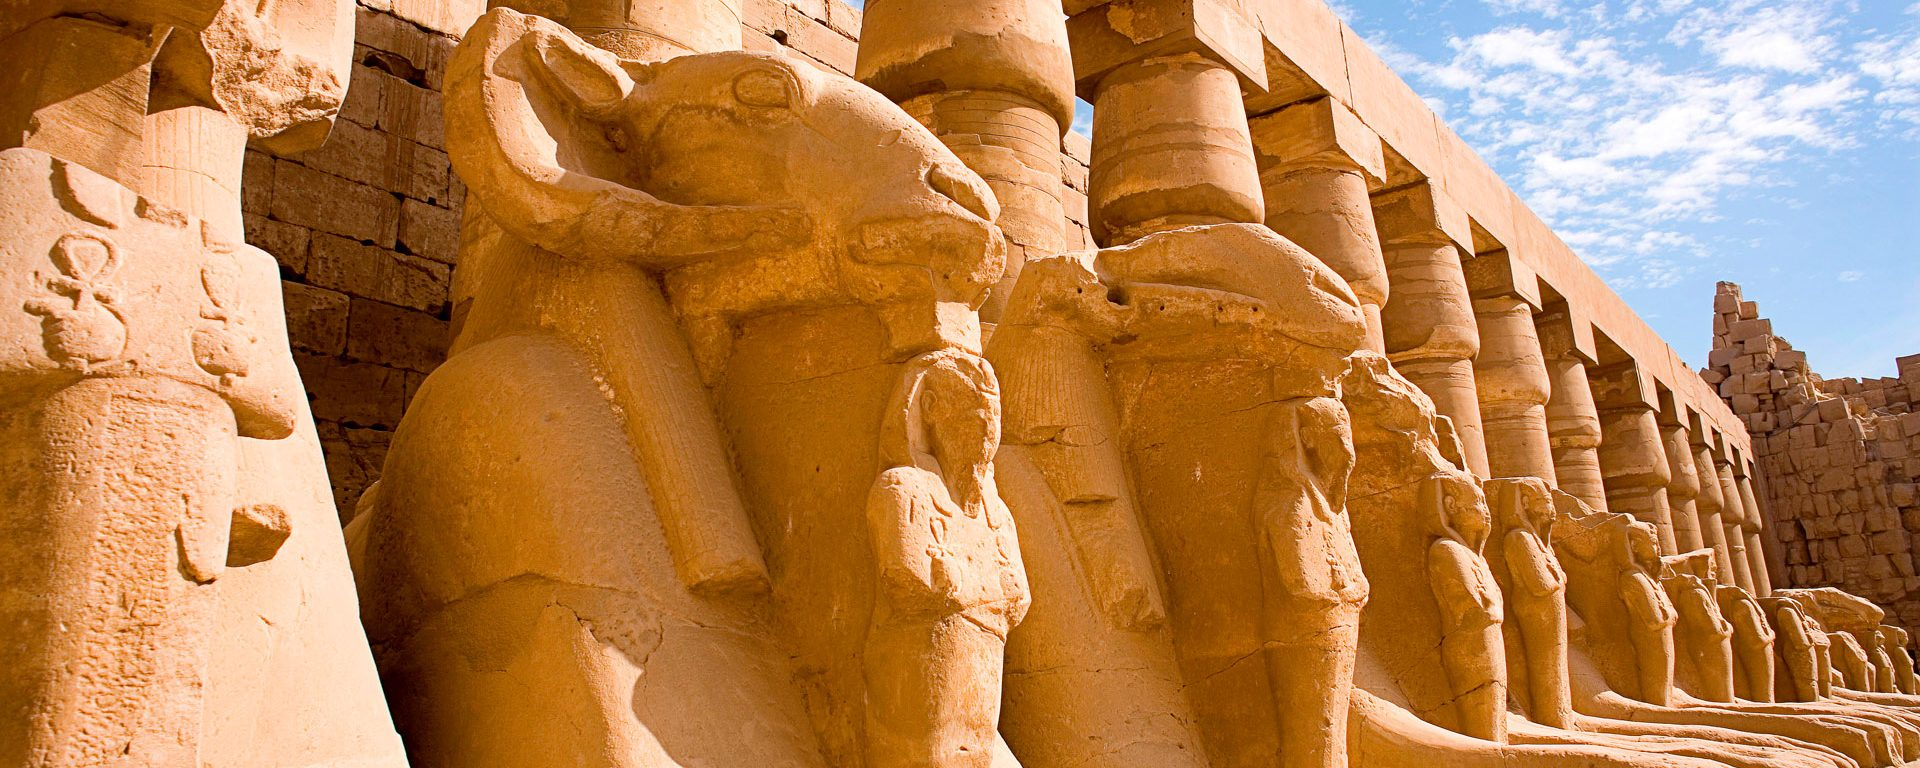 The Avenue of Rams at Temple of Karnak in Luxor, Egypt